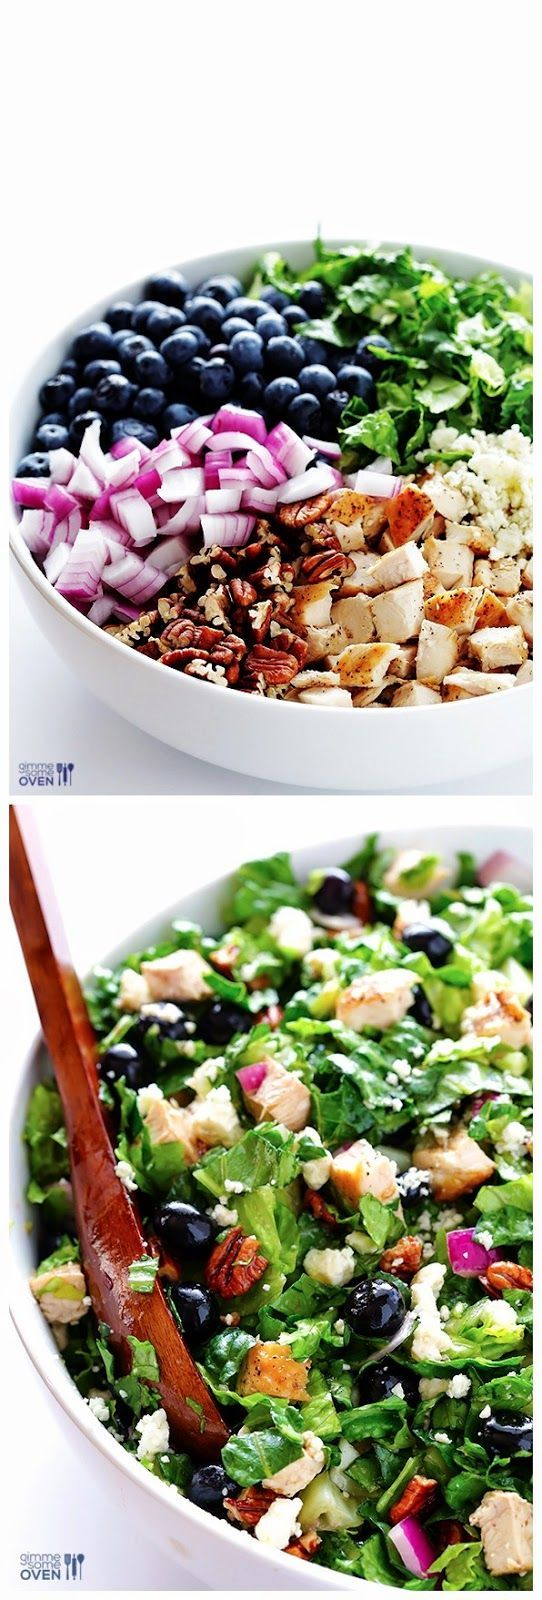 Blueberry Chicken Chopped Salad